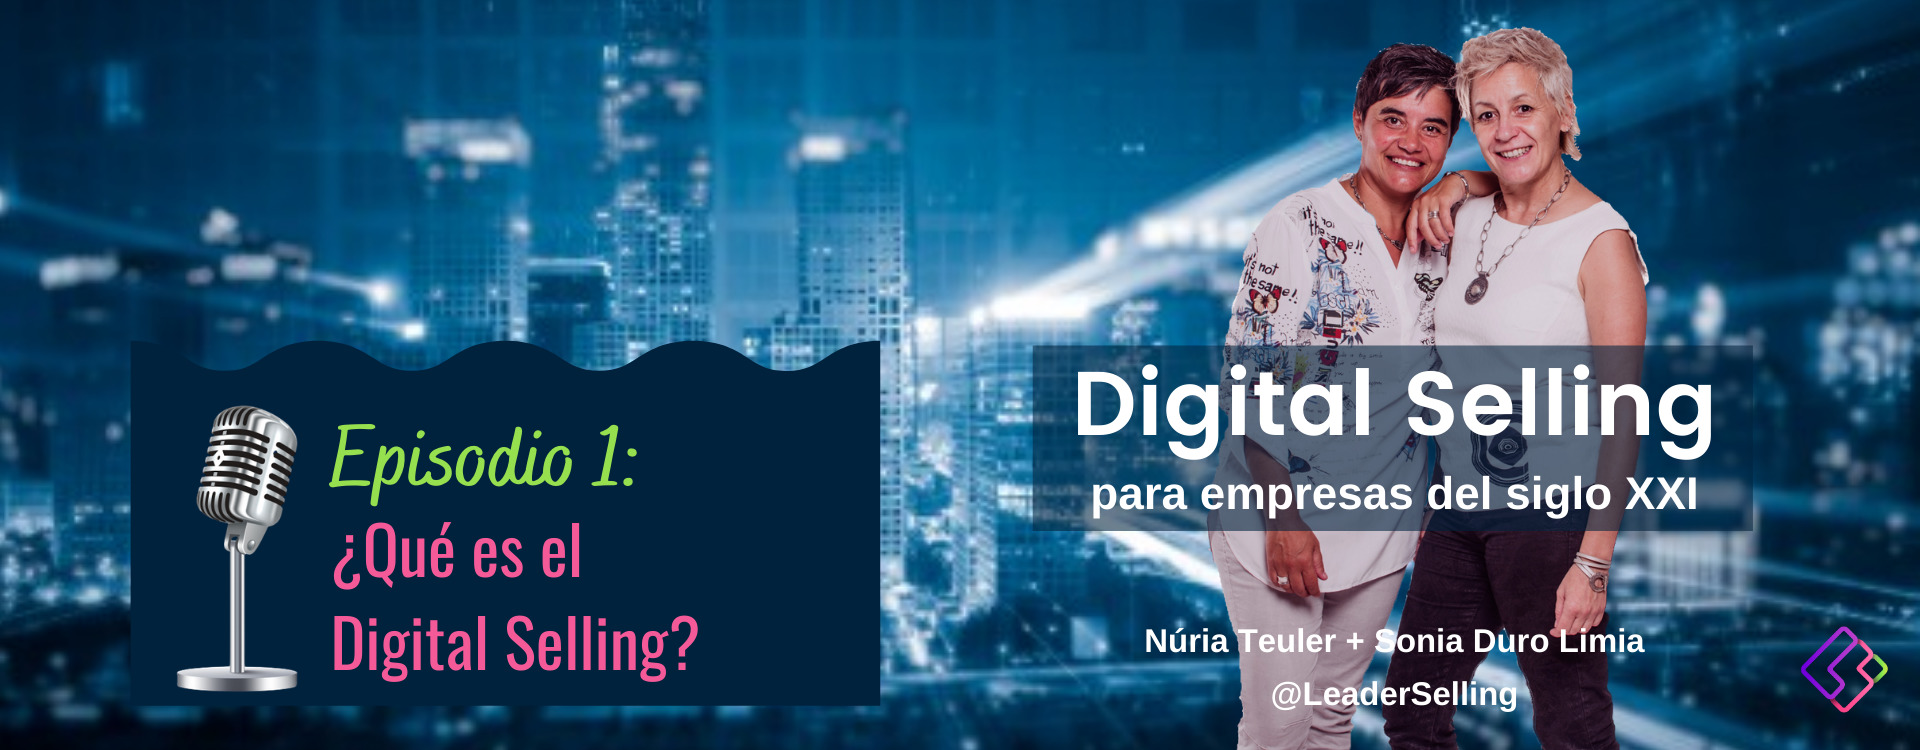 Episodio 1: ¿Qué es Digital Selling?